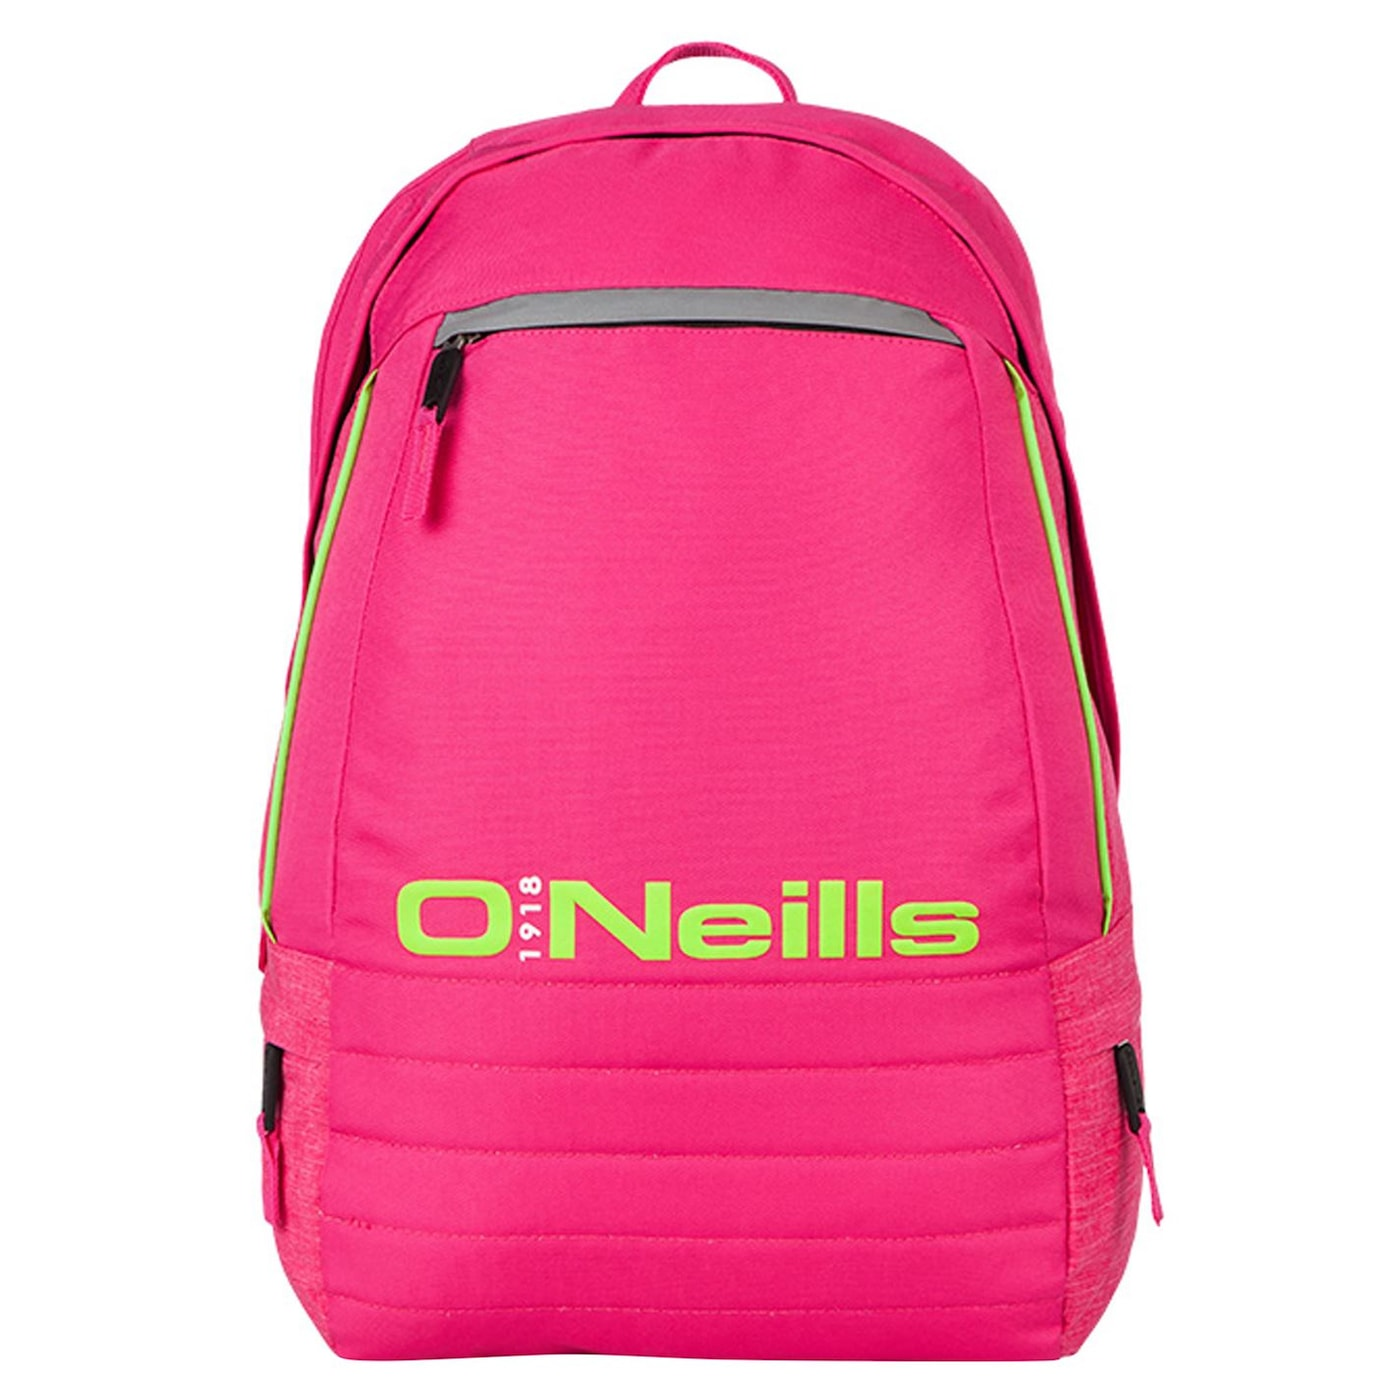 ONeills Falcon Backpack